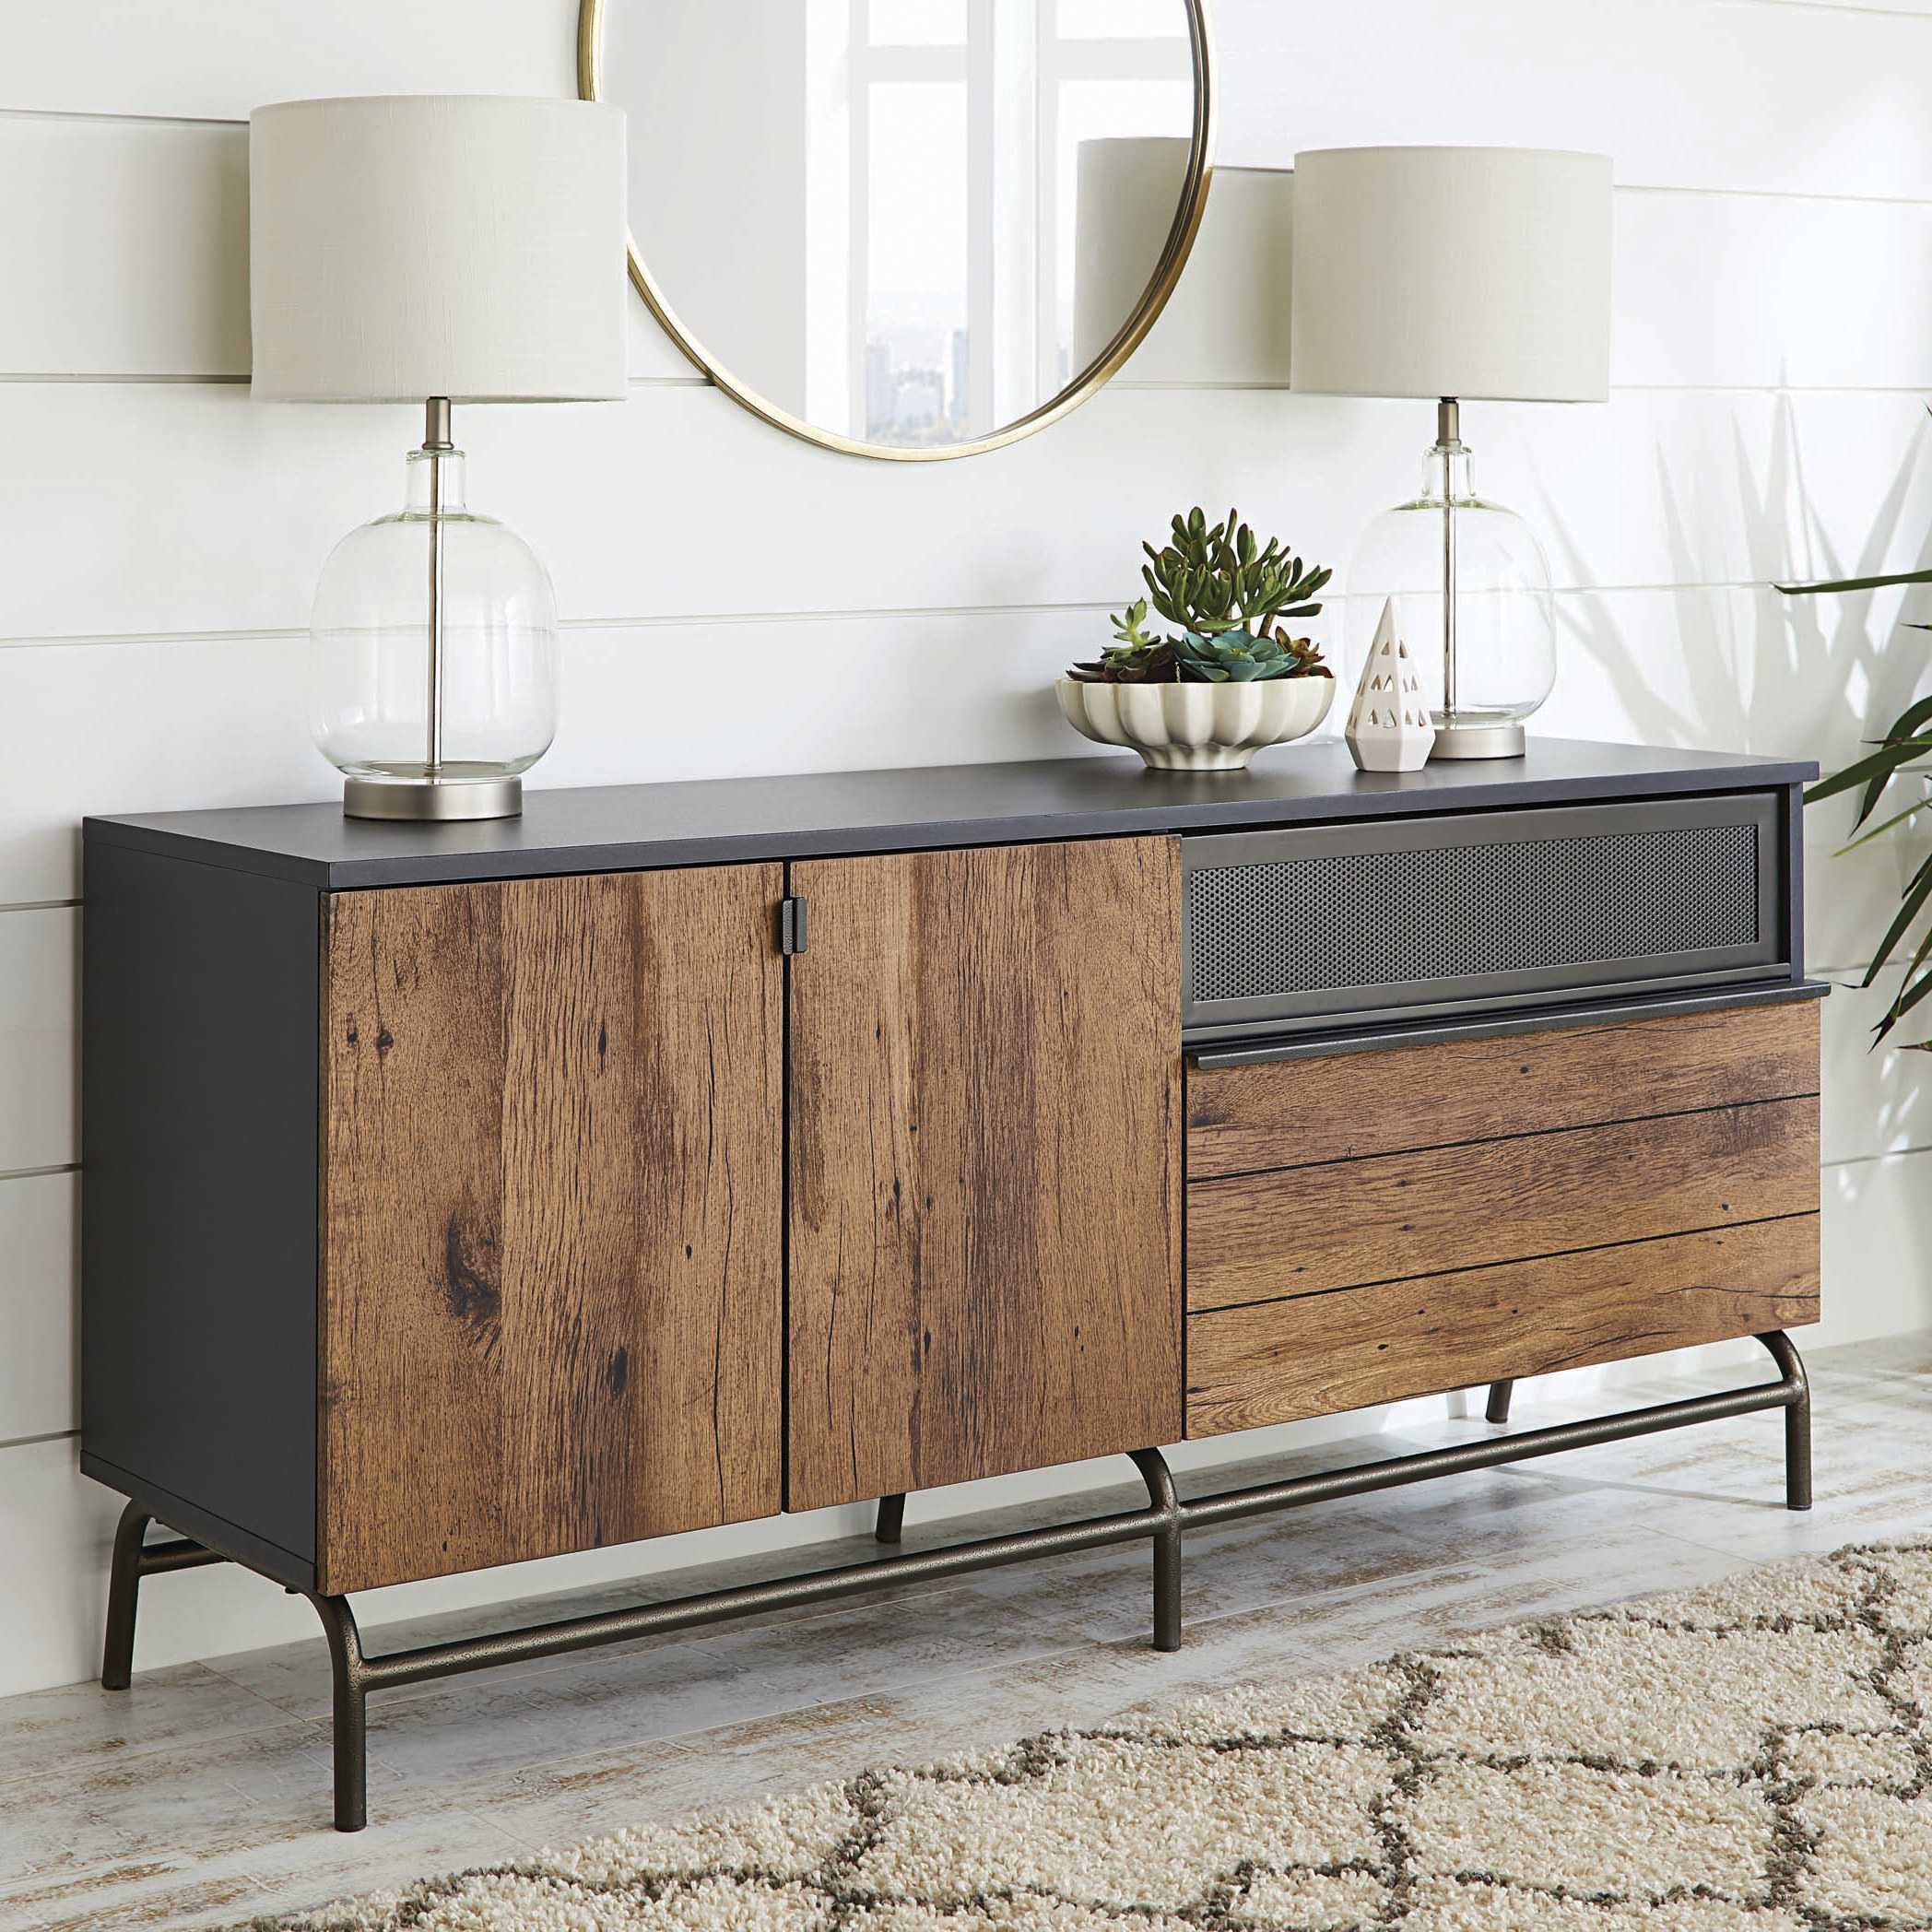 The credenza in use